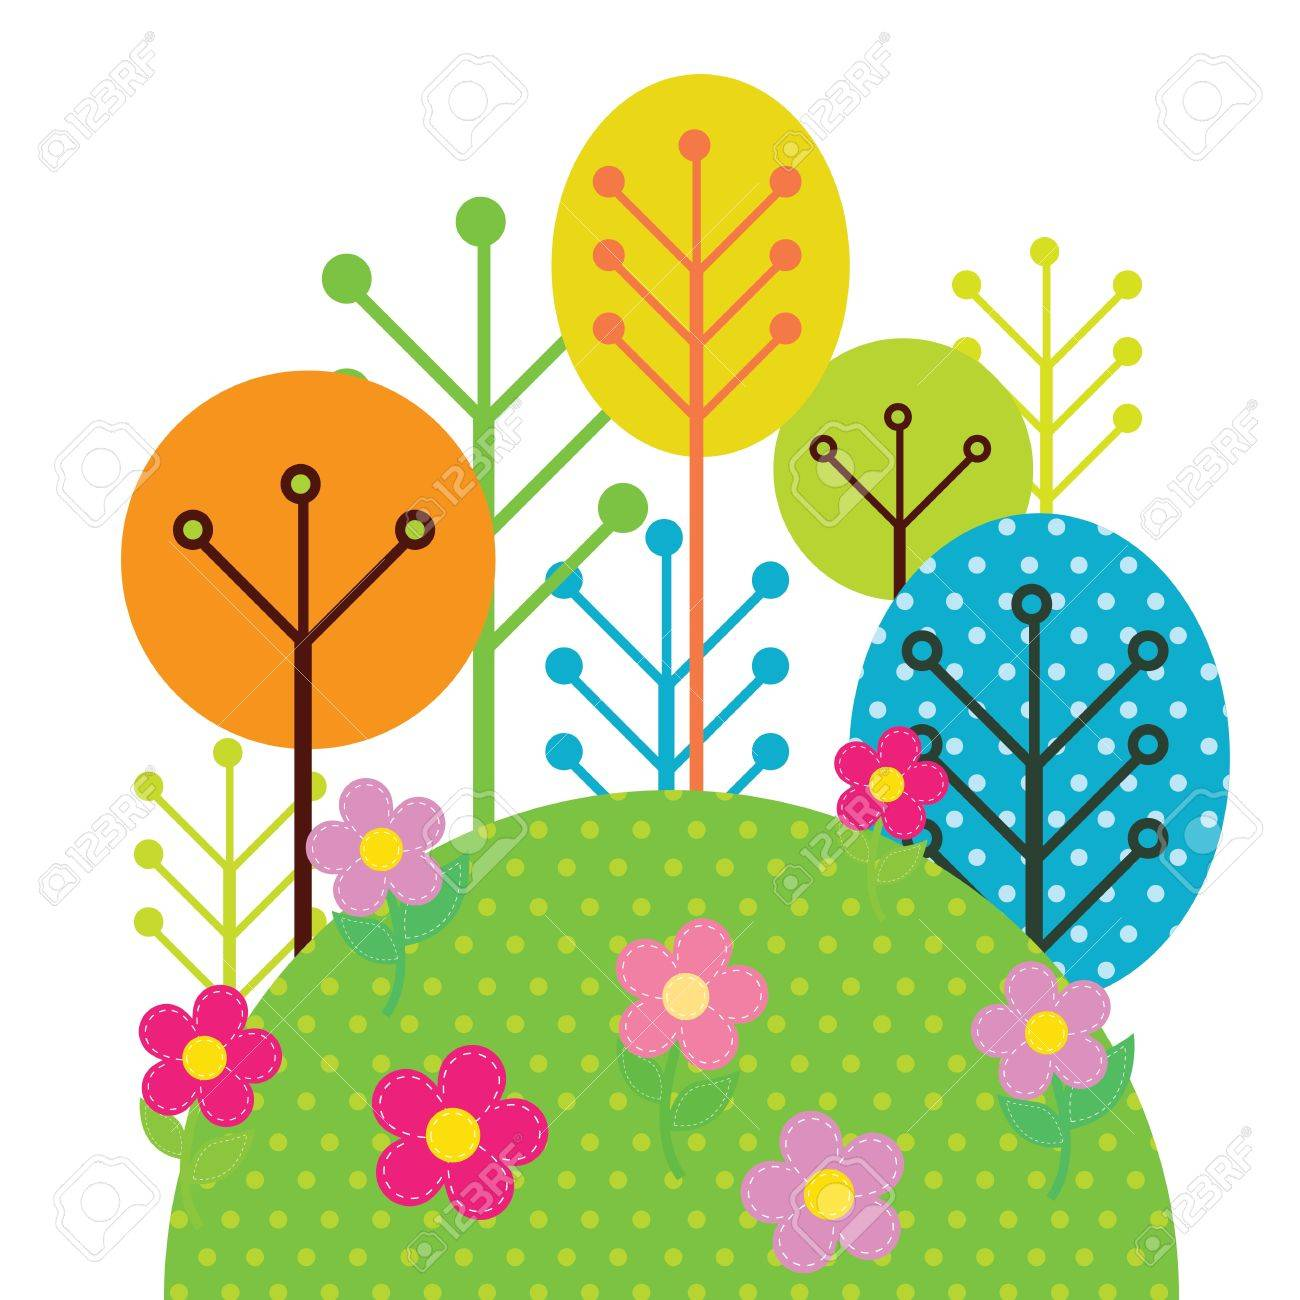 Illustration of forest trees Stock Vector - 14387927